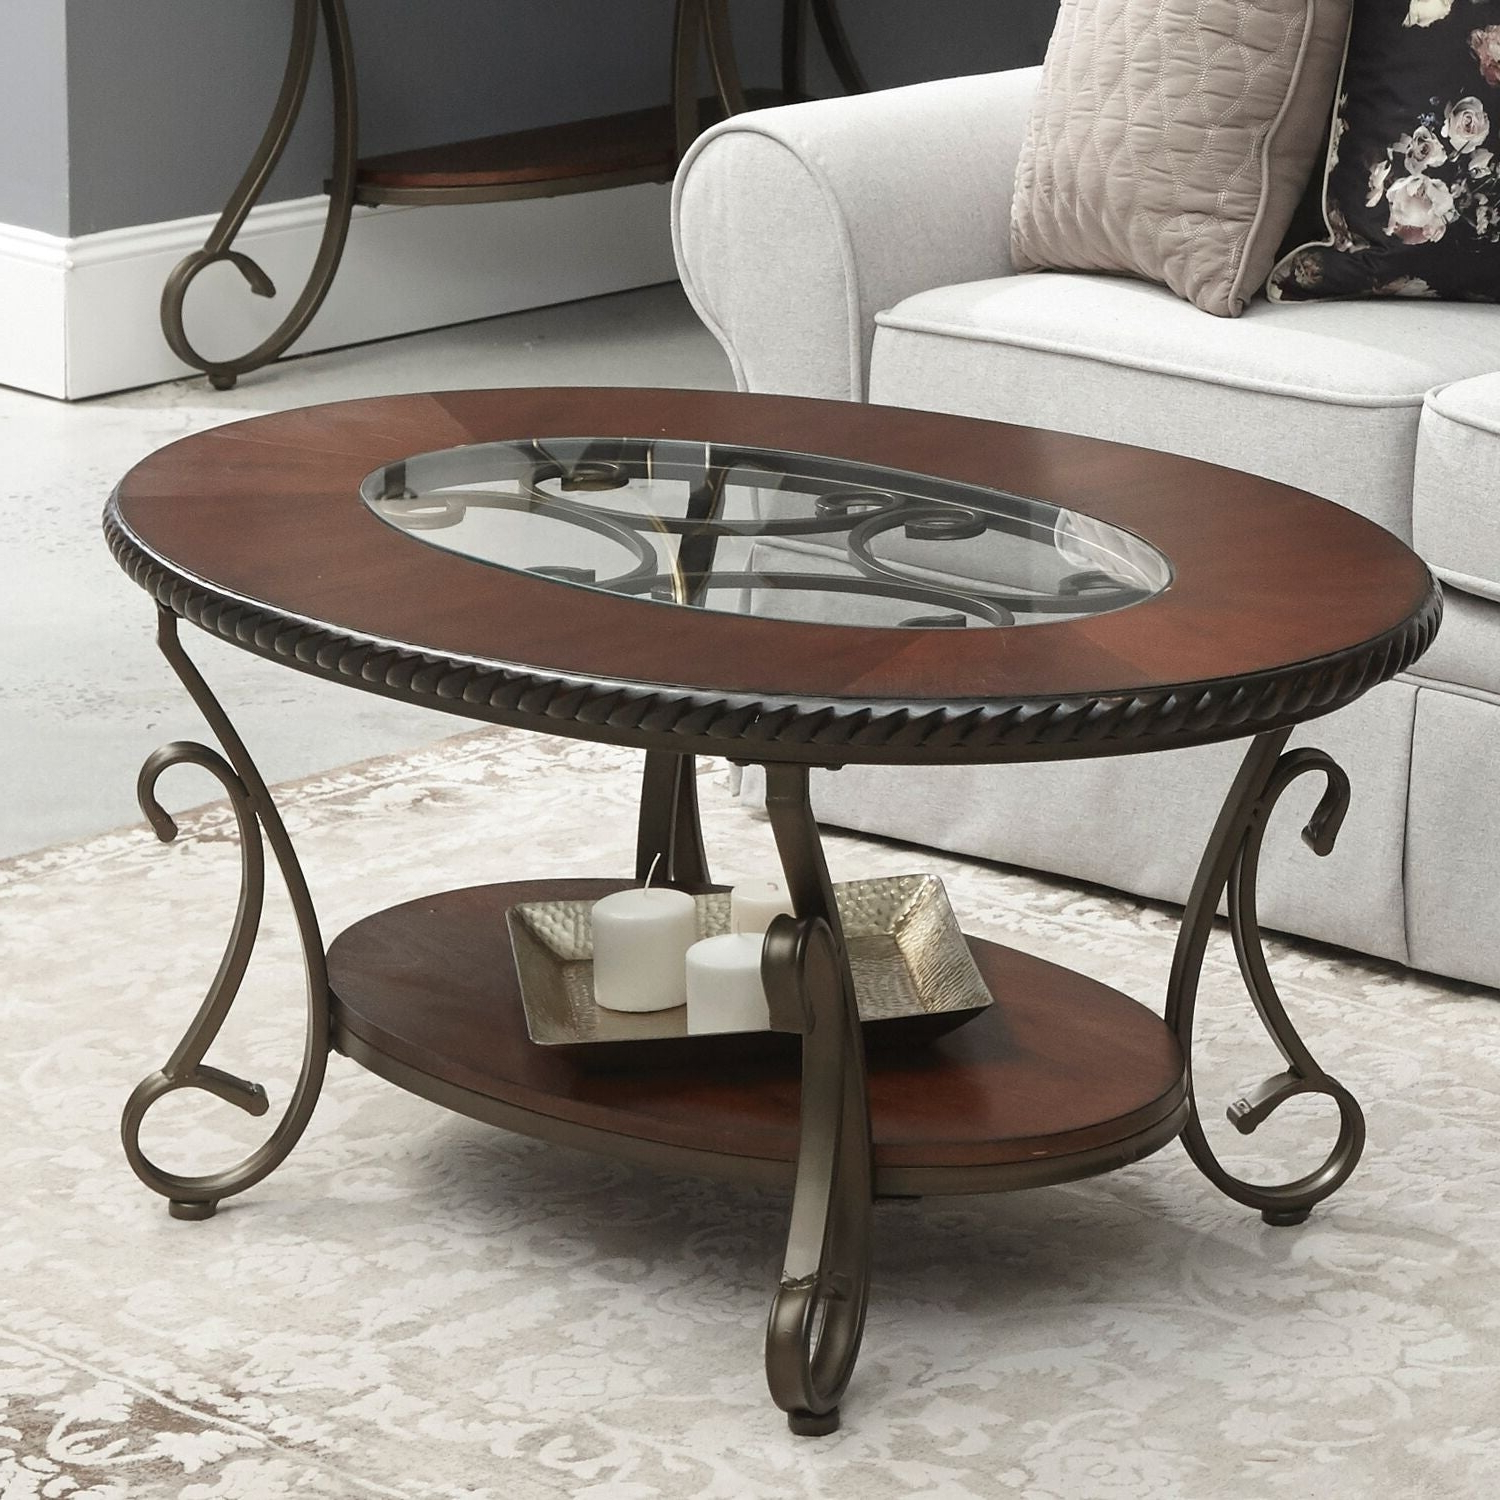 2019 Gracewood Hollow Fishta Antique Brass Metal Glass 3 Piece Tables Regarding Home Source Cragin Coffee Table With Glass Inset – Dark Finish – 45.3 In  Wide X 29.5 In Deep X 21.6 In High (Gallery 18 of 20)